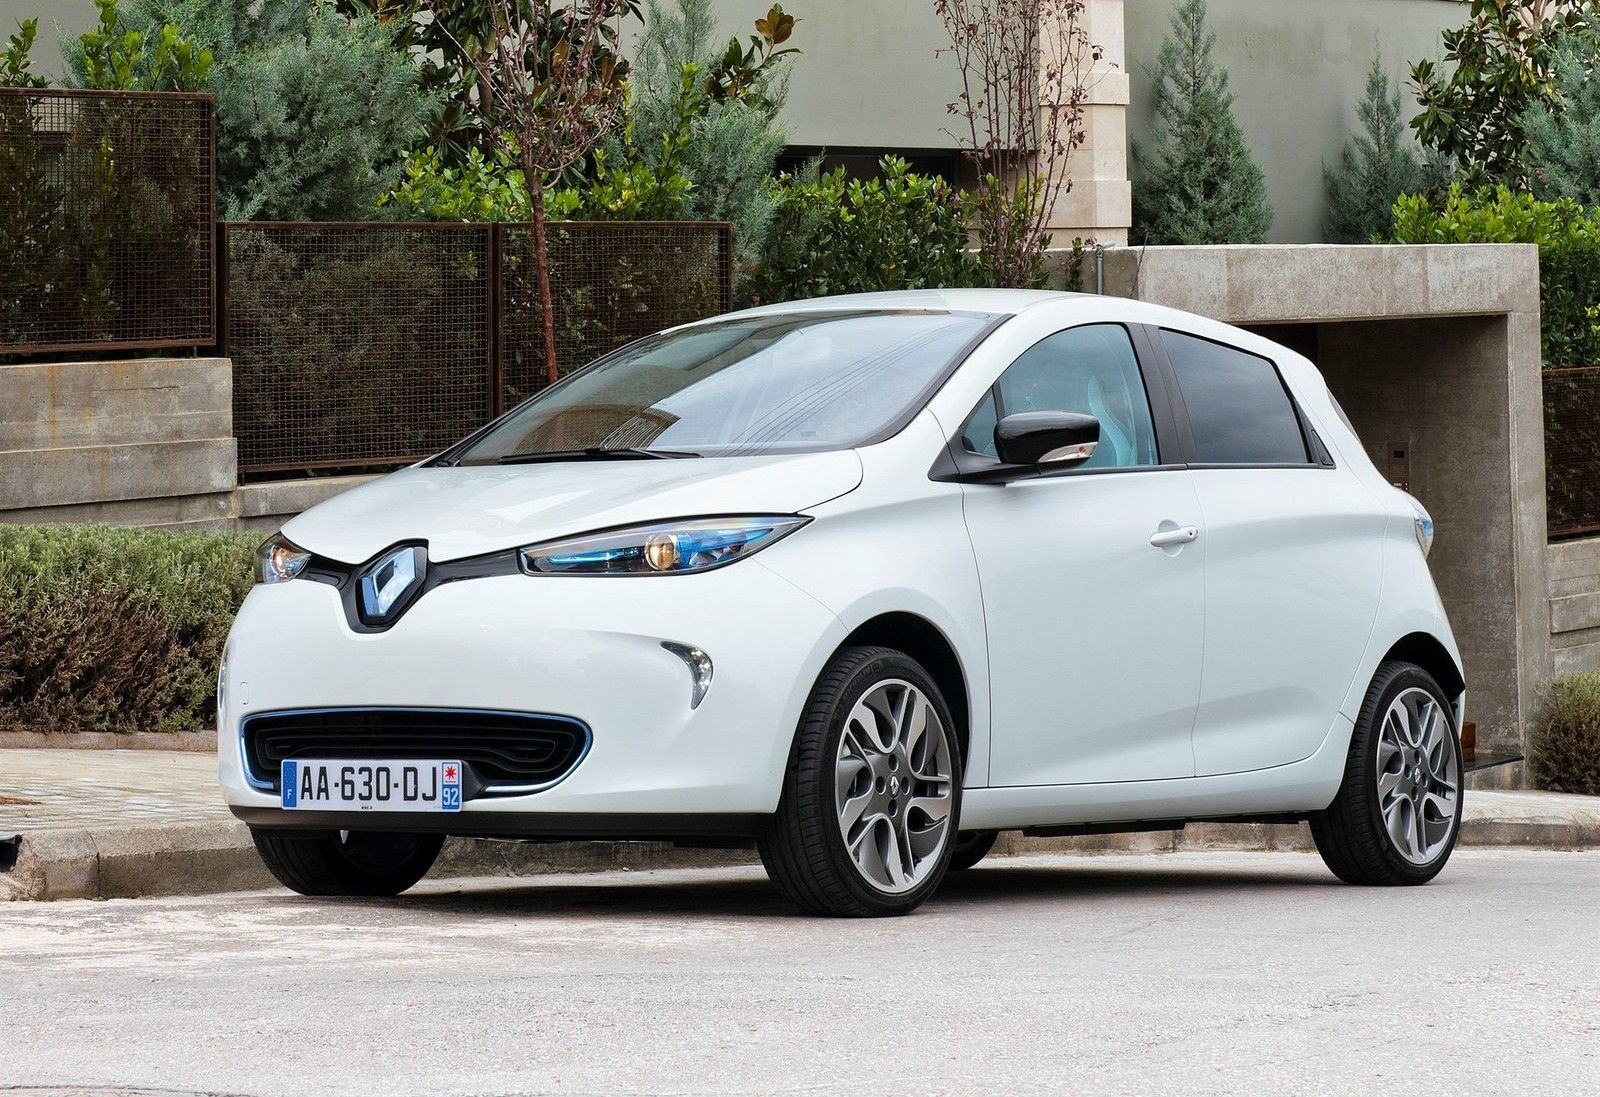 2015 Renault Zoe Gets More Range Reduced Charging Time Video Photo Gallery Renault Zoe Renault Monte Carlo Rally